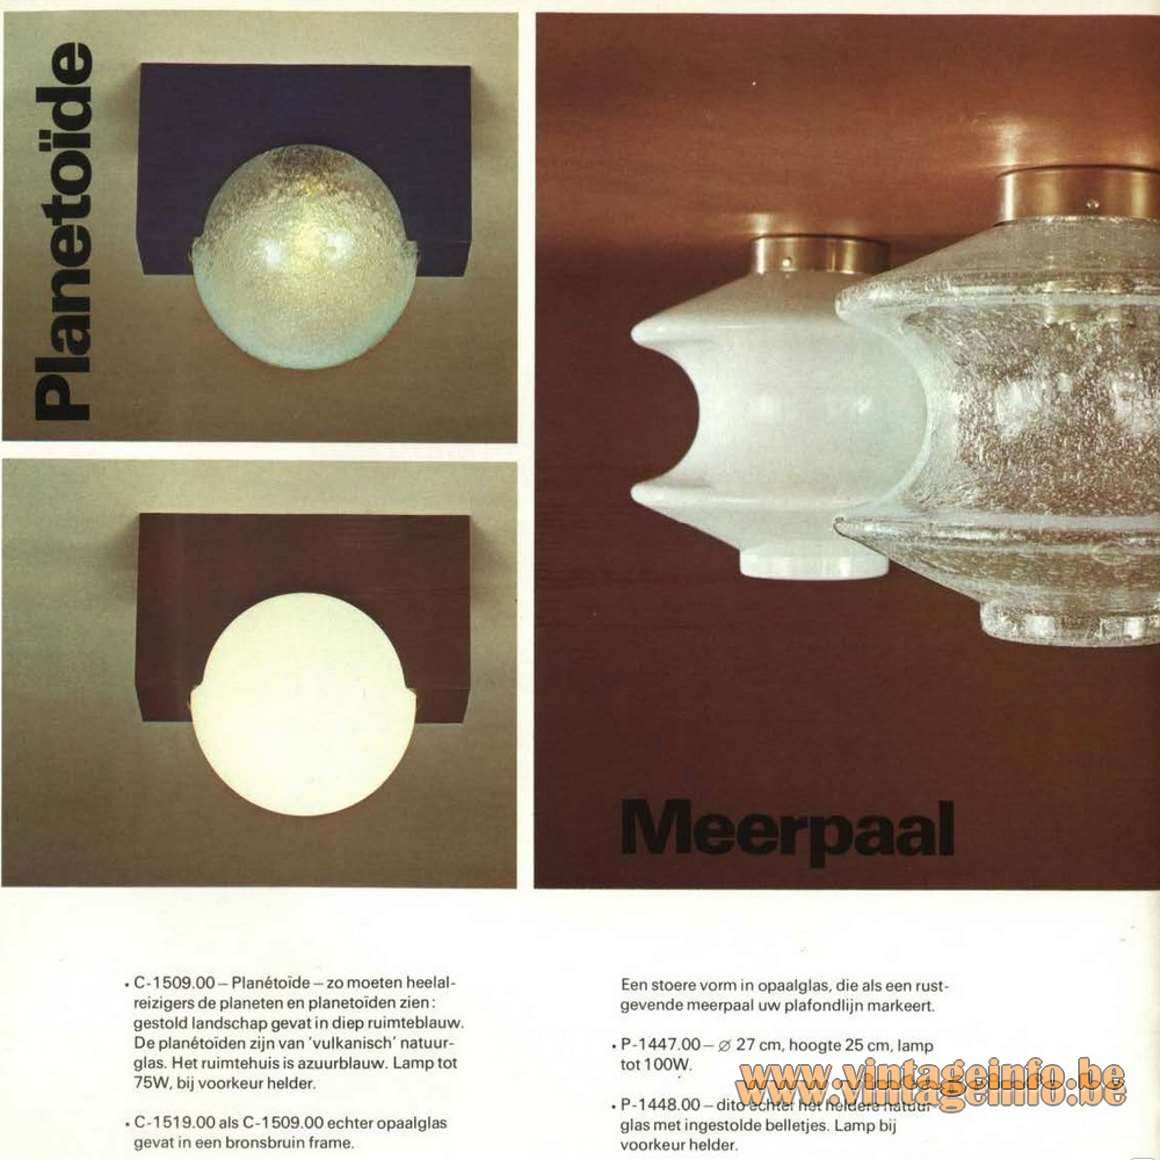 Raak Meerpaal P-1447 - P-1448 - Catalogue picture